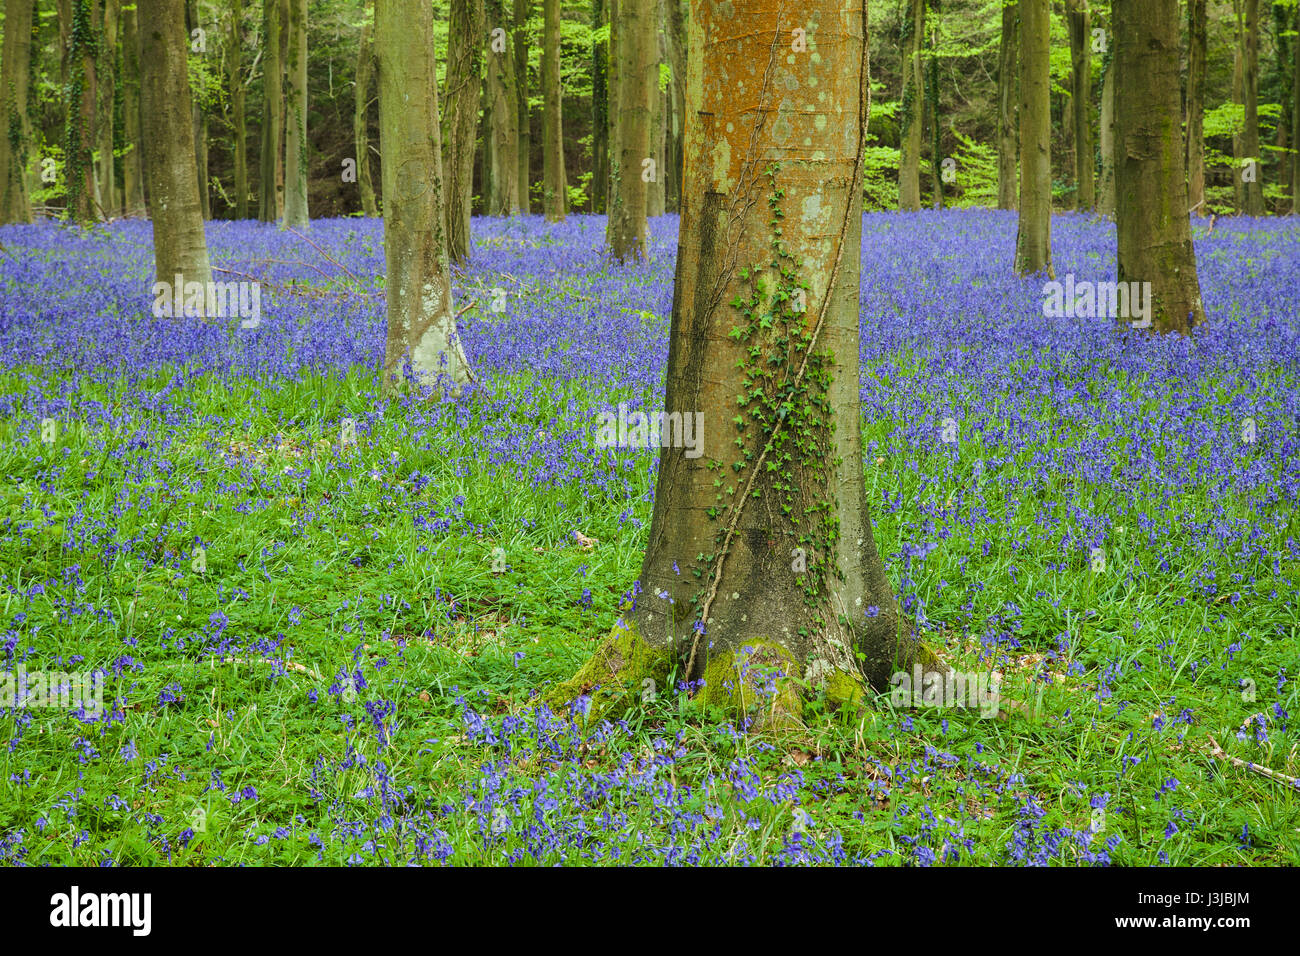 Angmering Stock Photos & Angmering Stock Images - Alamy